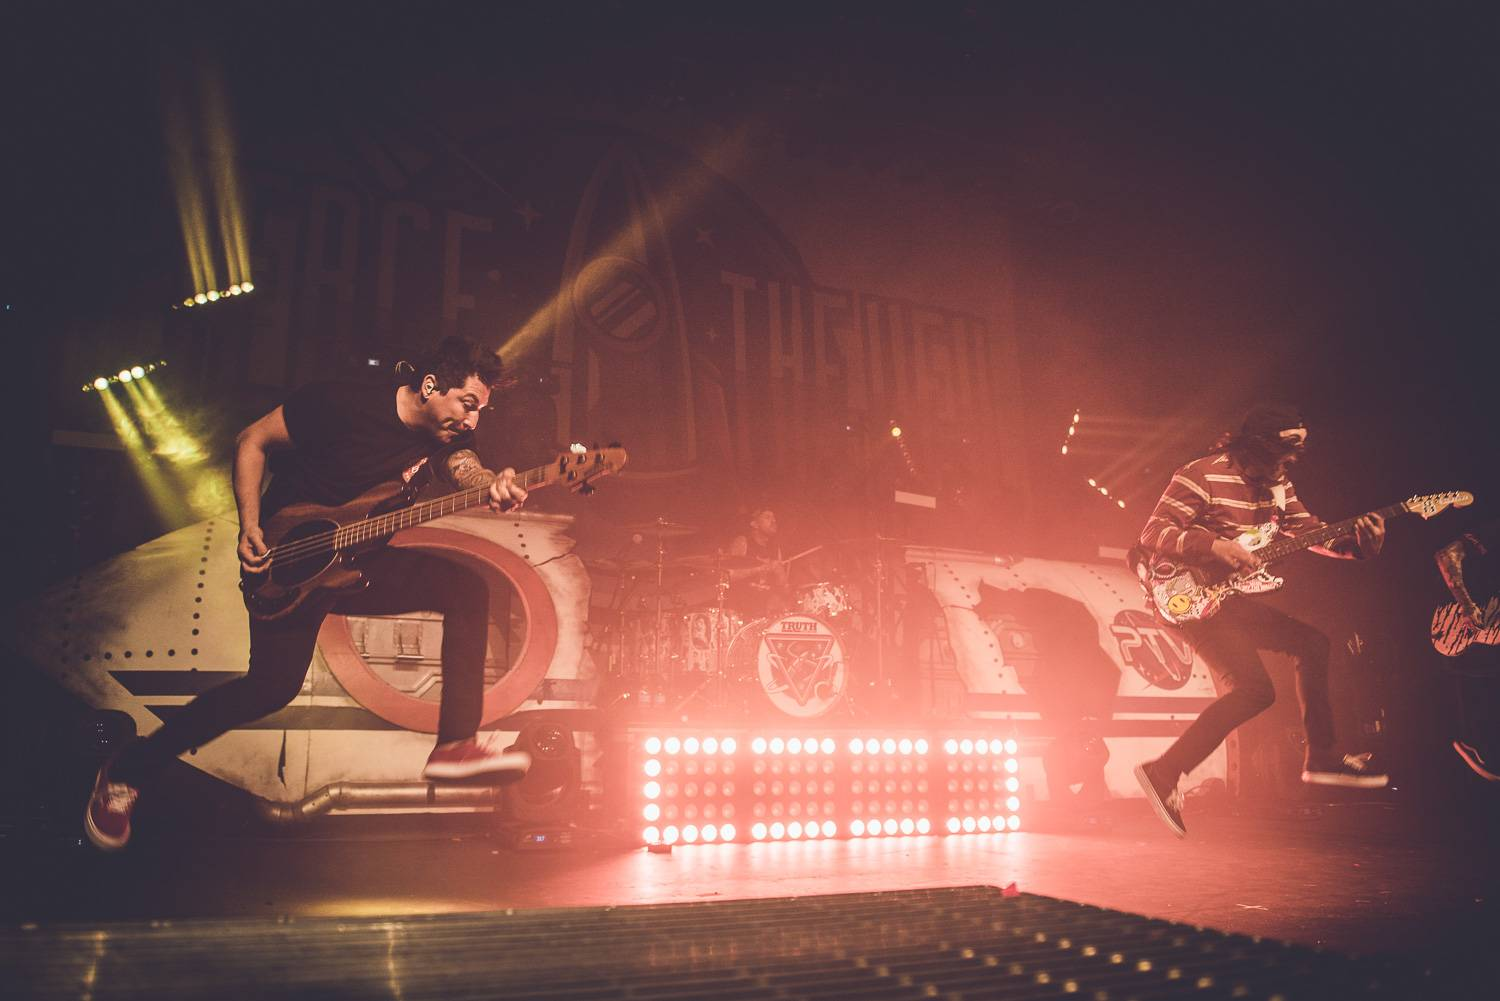 Pierce The Veil at the Vogue Theatre, Vancouver, Feb. 2o 2017. Pavel Boiko photo